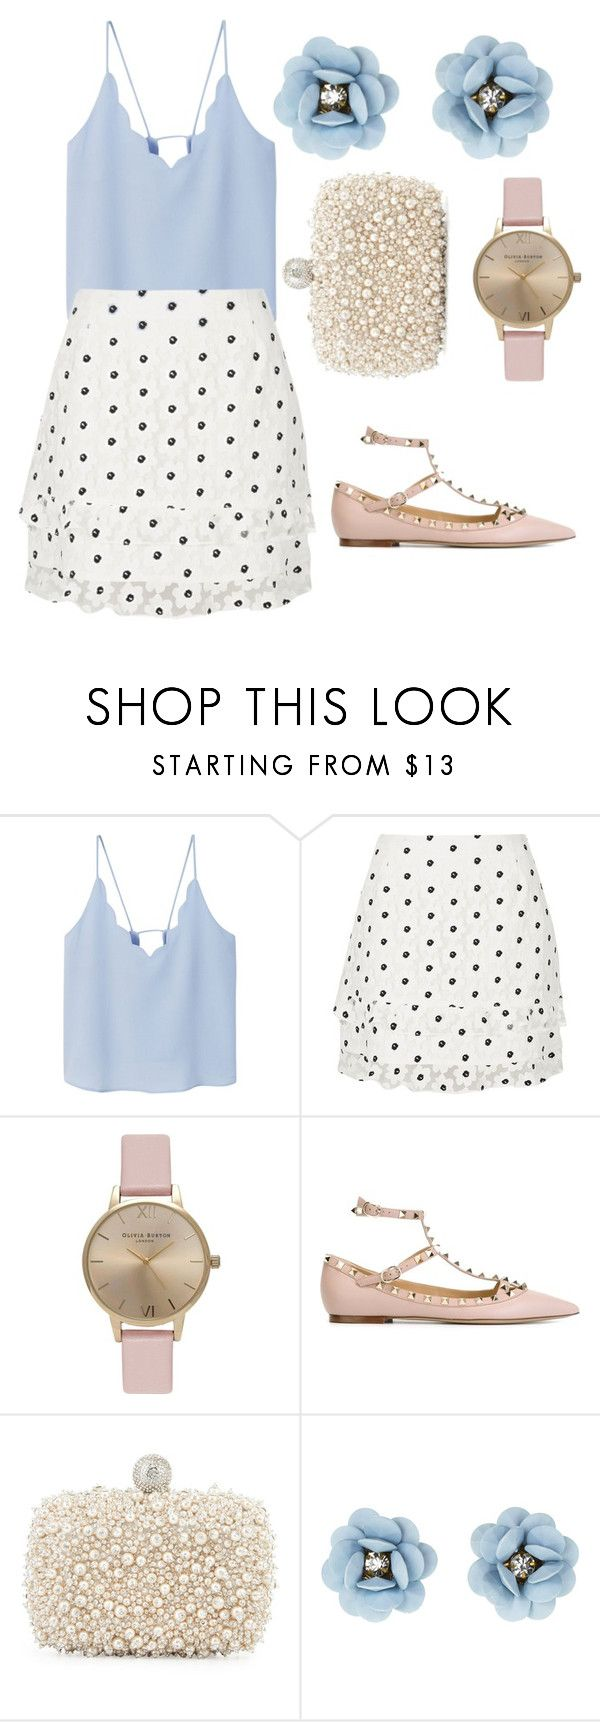 """""""Girly girl"""" by shelbyspadeglamour ❤ liked on Polyvore featuring MANGO, River Island, Olivia Burton, Valentino and Roger Vivier"""